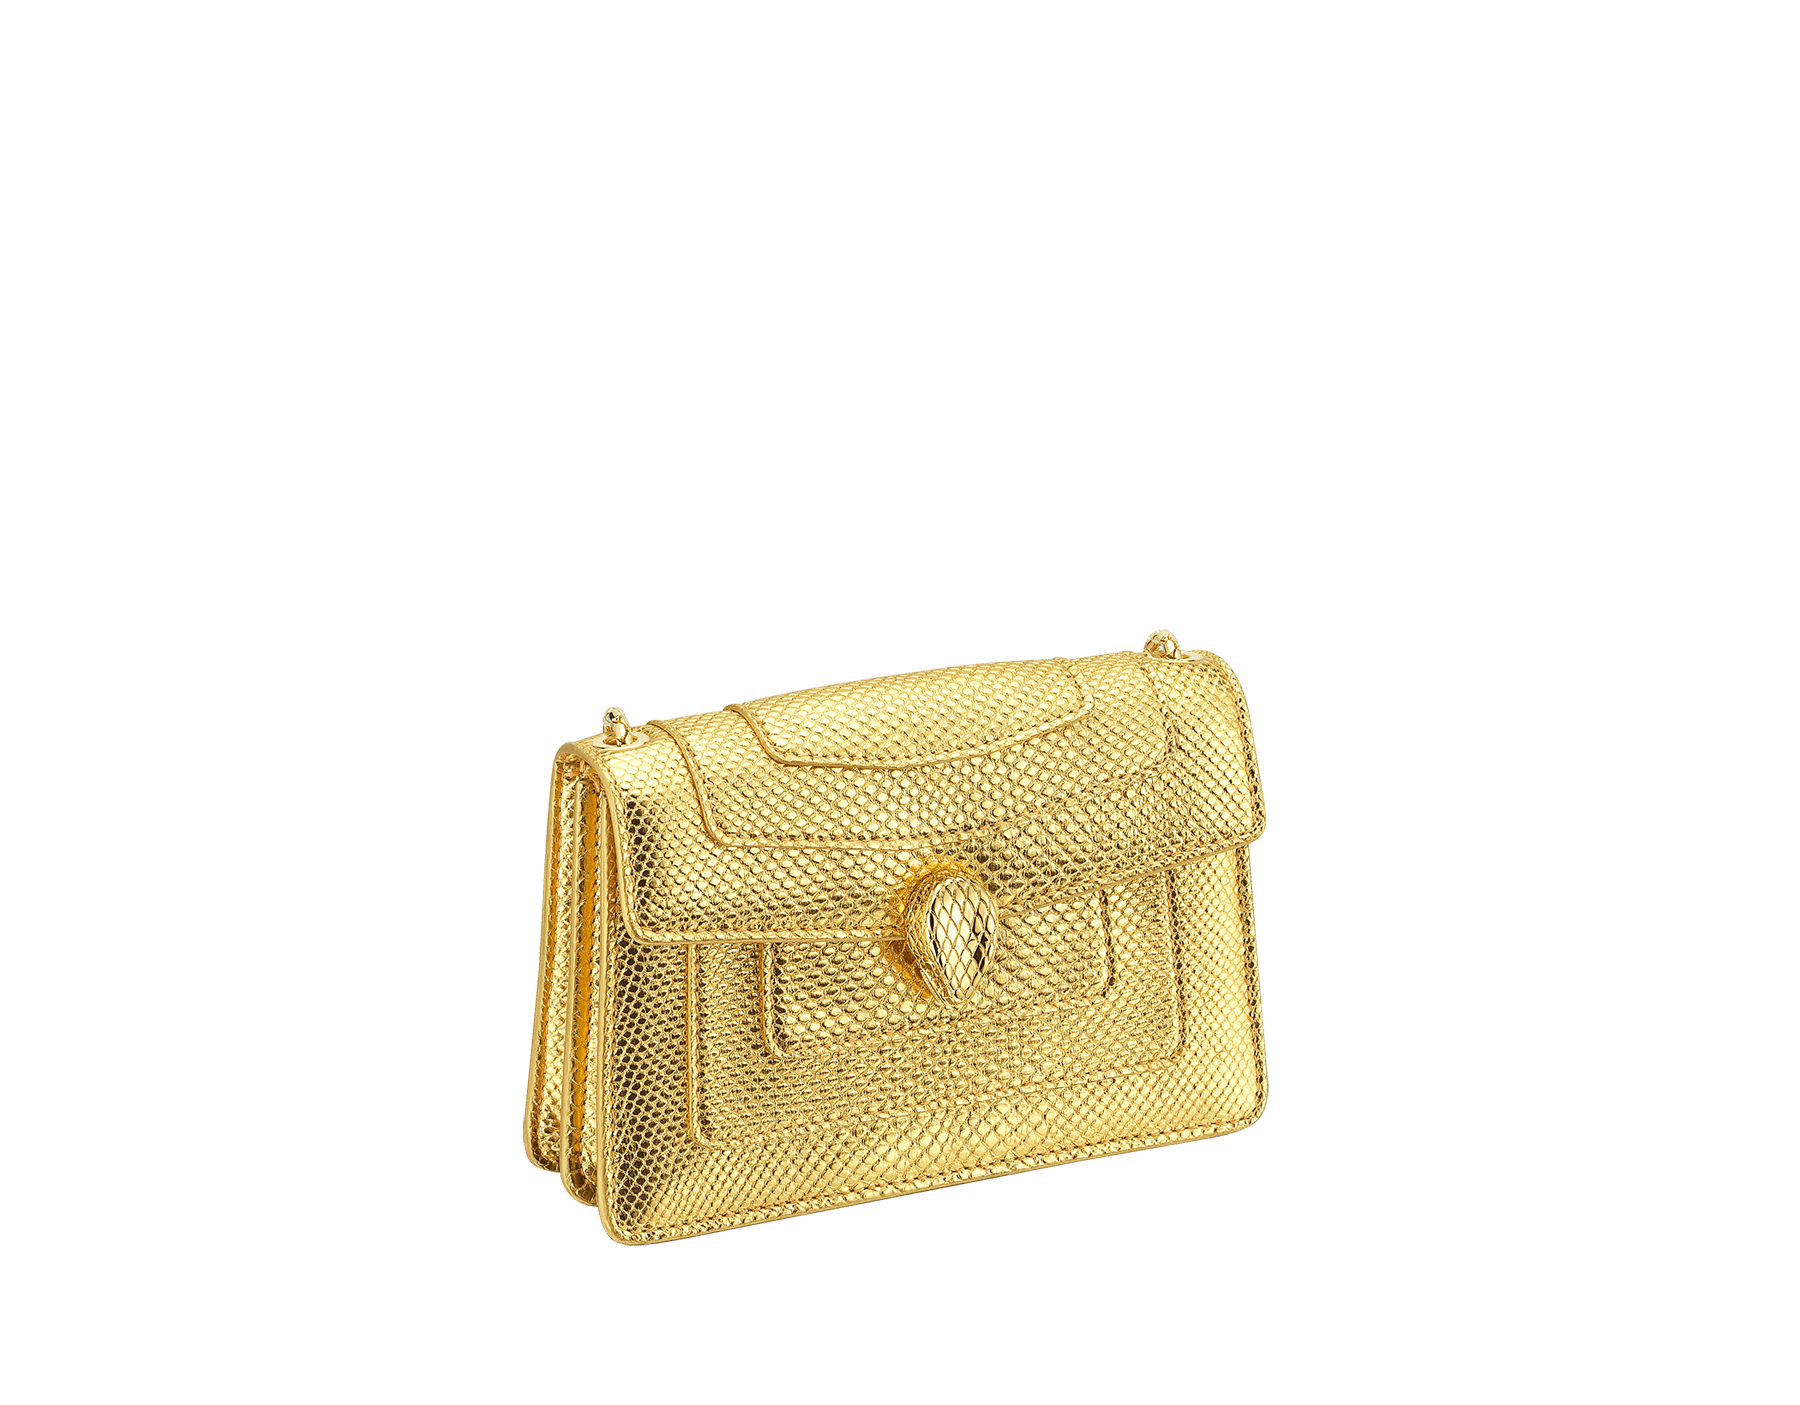 """Serpenti Forever"" mini crossbody bag in ""Molten"" gold karung skin with black nappa leather inner lining, offering a touch of radiance for the Winter Holidays. New Serpenti head closure in gold-plated brass, complete with ruby-red enamel eyes. 290619 image 2"